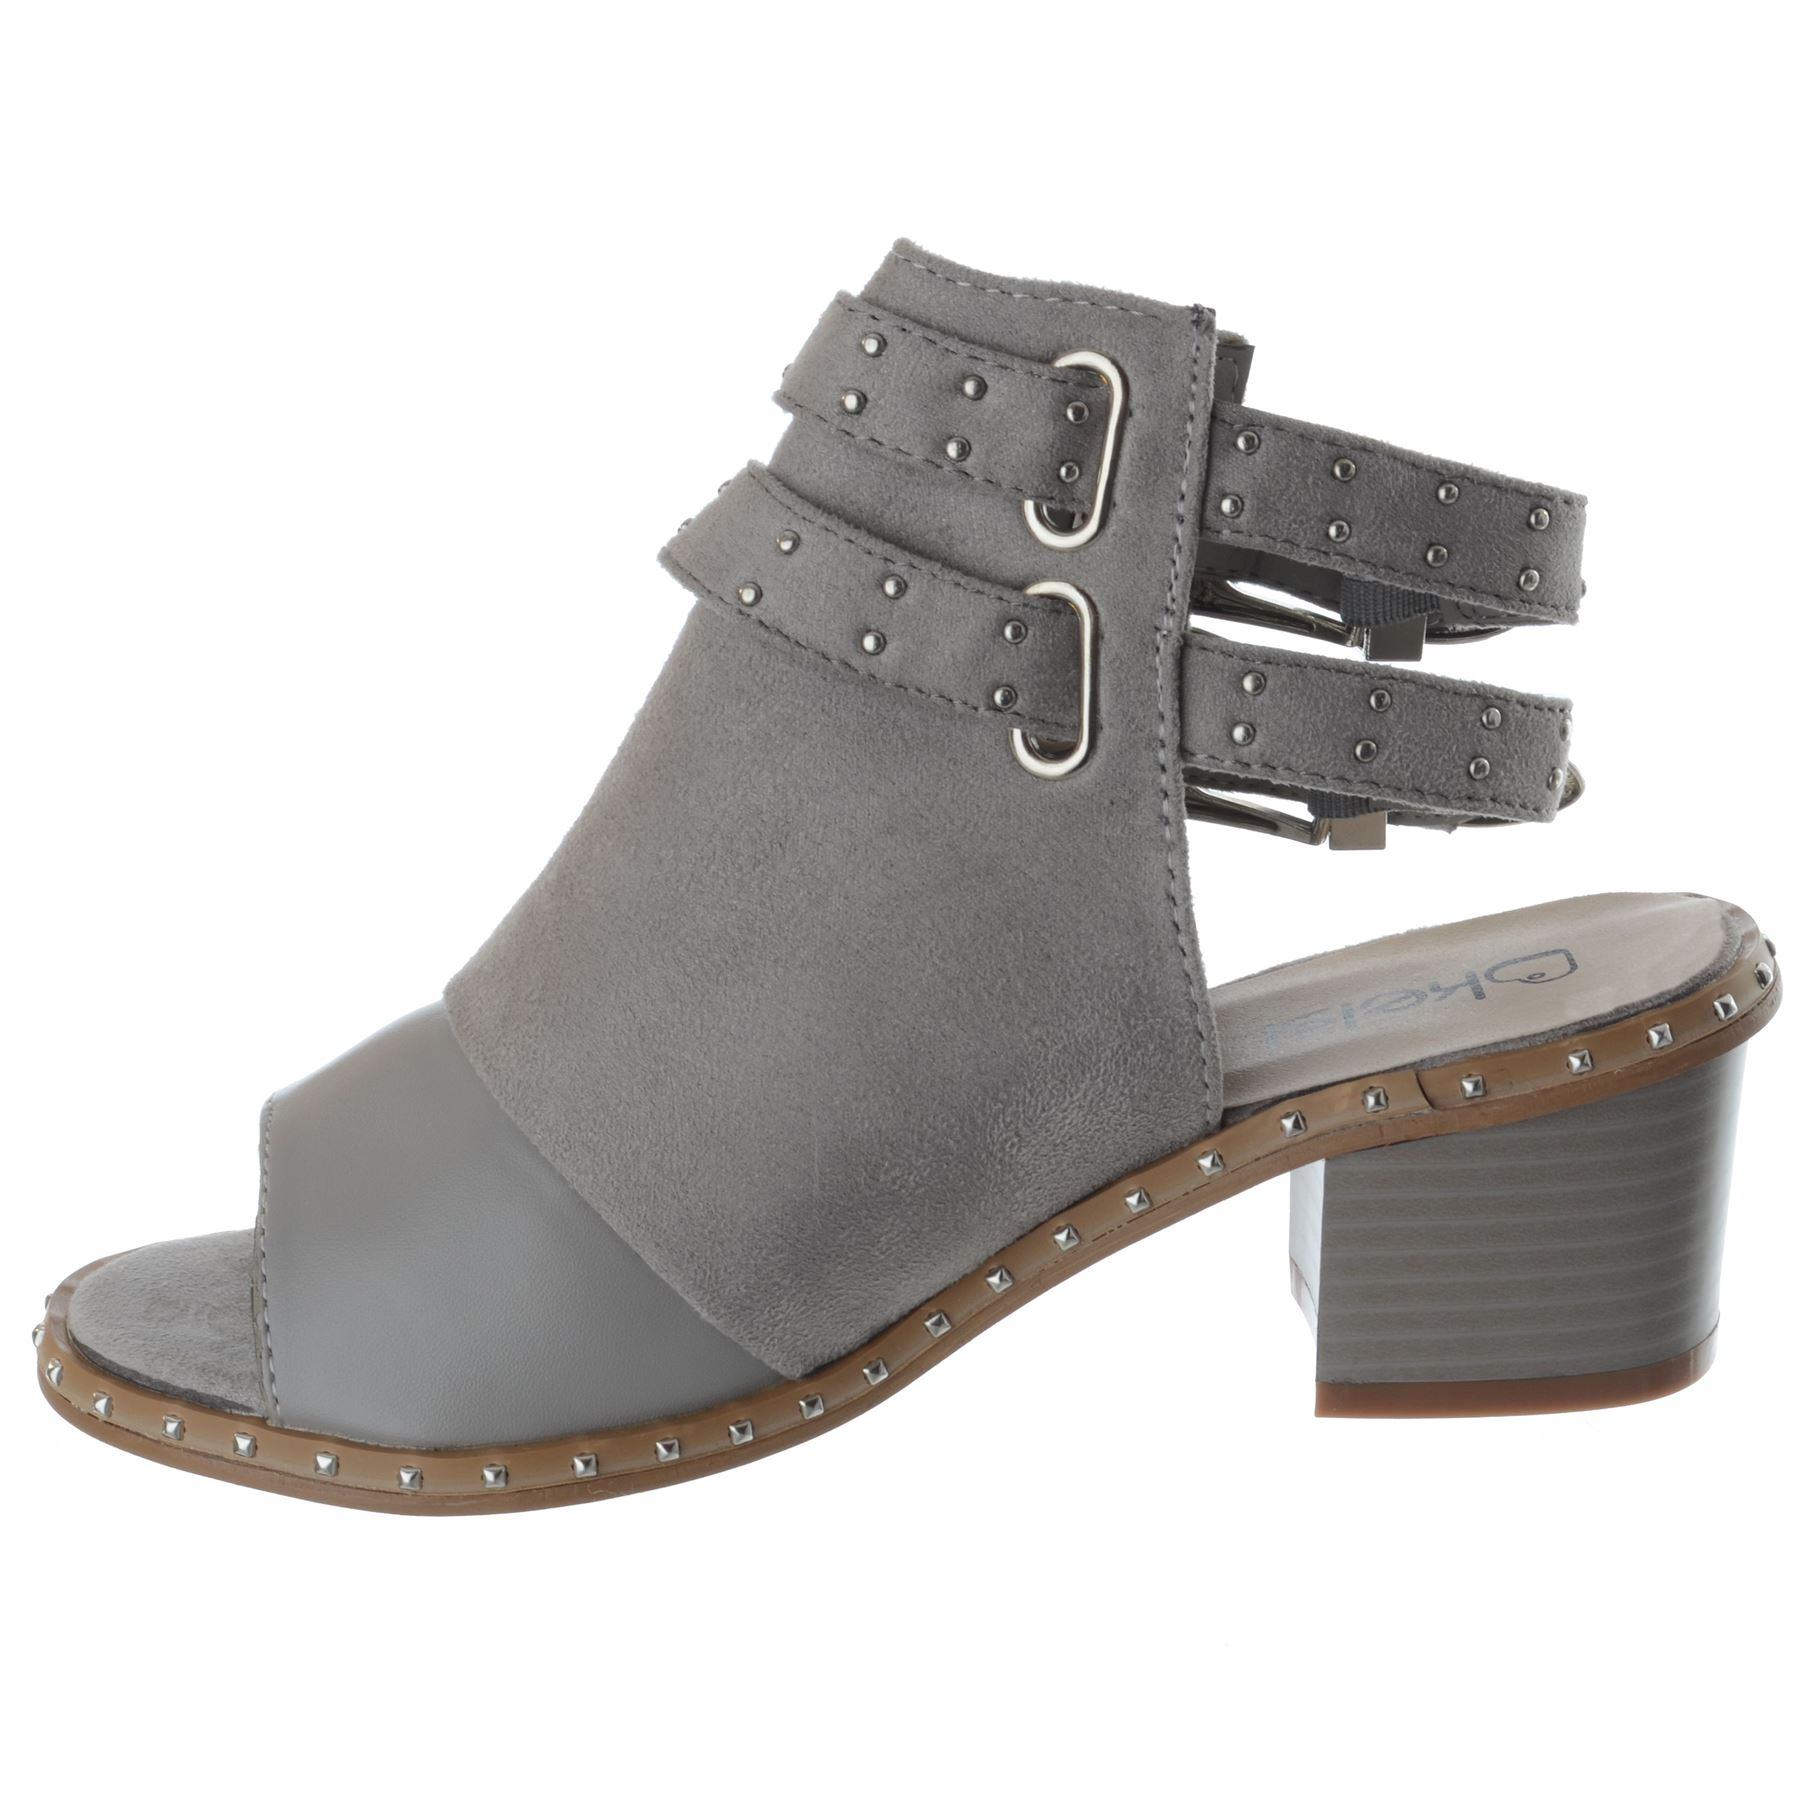 Womens-Ladies-Studded-Peep-Toe-Ankle-Strap-Chunky-Block-Heel-Sandals-Shoes-Size thumbnail 10